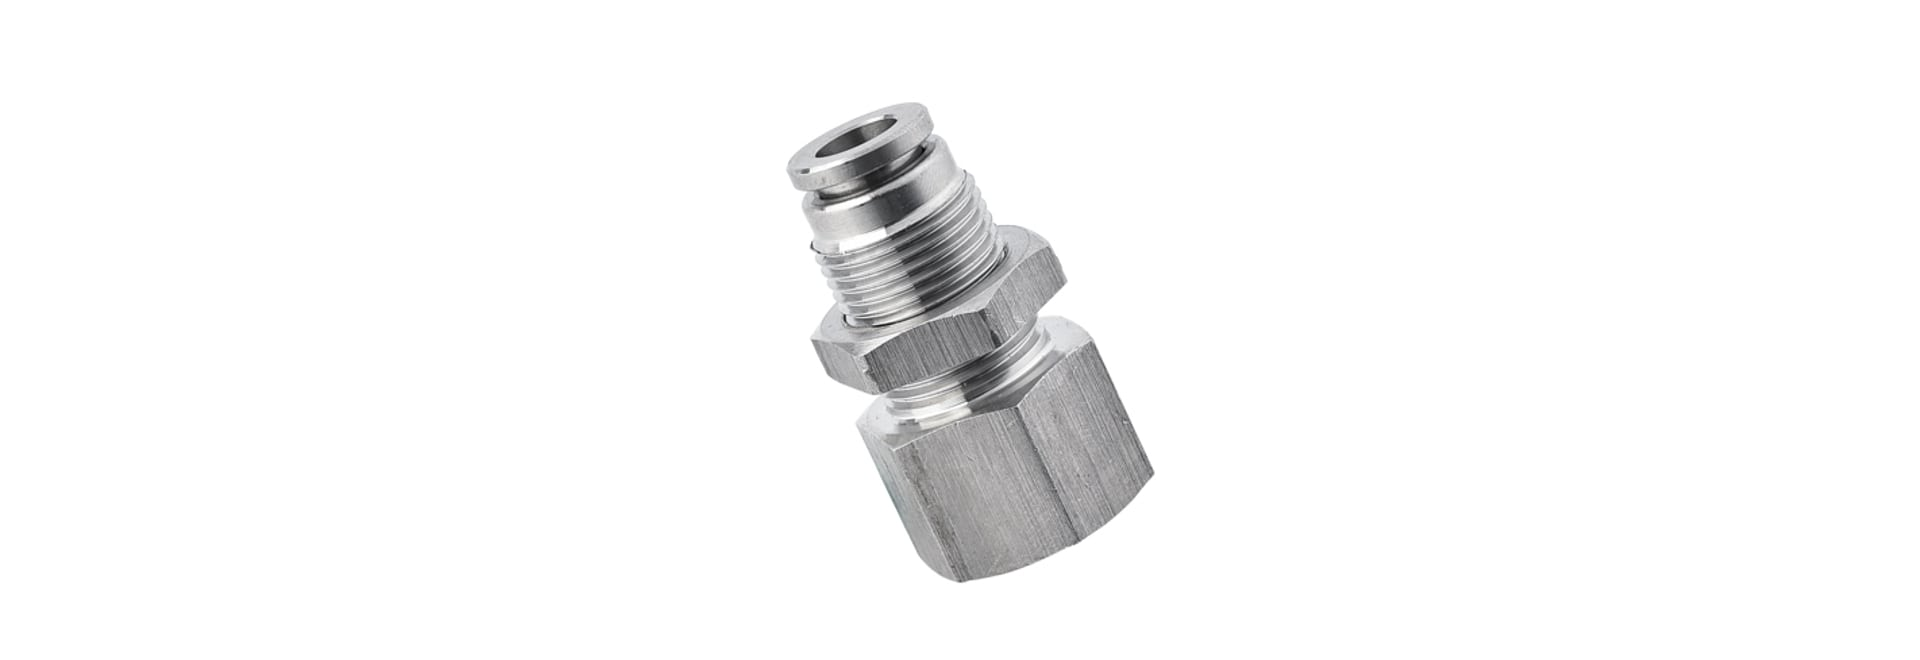 SPMF Bulkhead Female Straight Stainless Steel Push to Connect Fitting